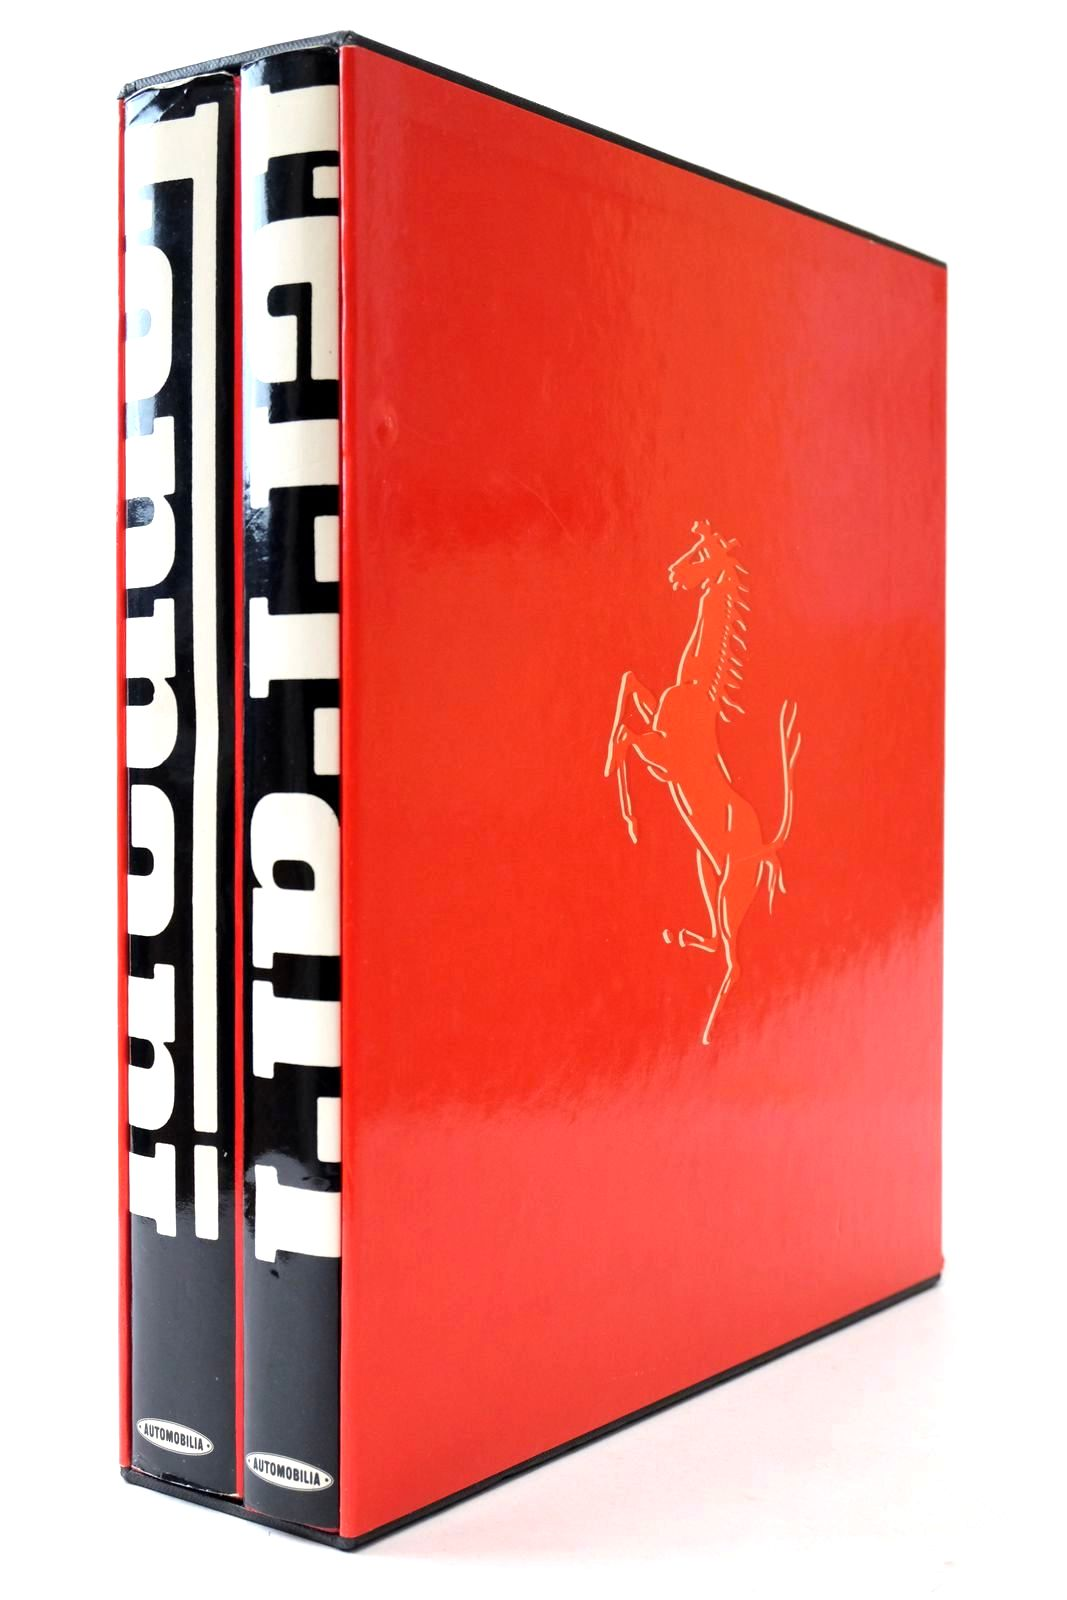 Photo of FERRARI CATALOGUE RAISONNE 1946-81 written by Costantino, Augusto published by Automobilia (STOCK CODE: 2132912)  for sale by Stella & Rose's Books